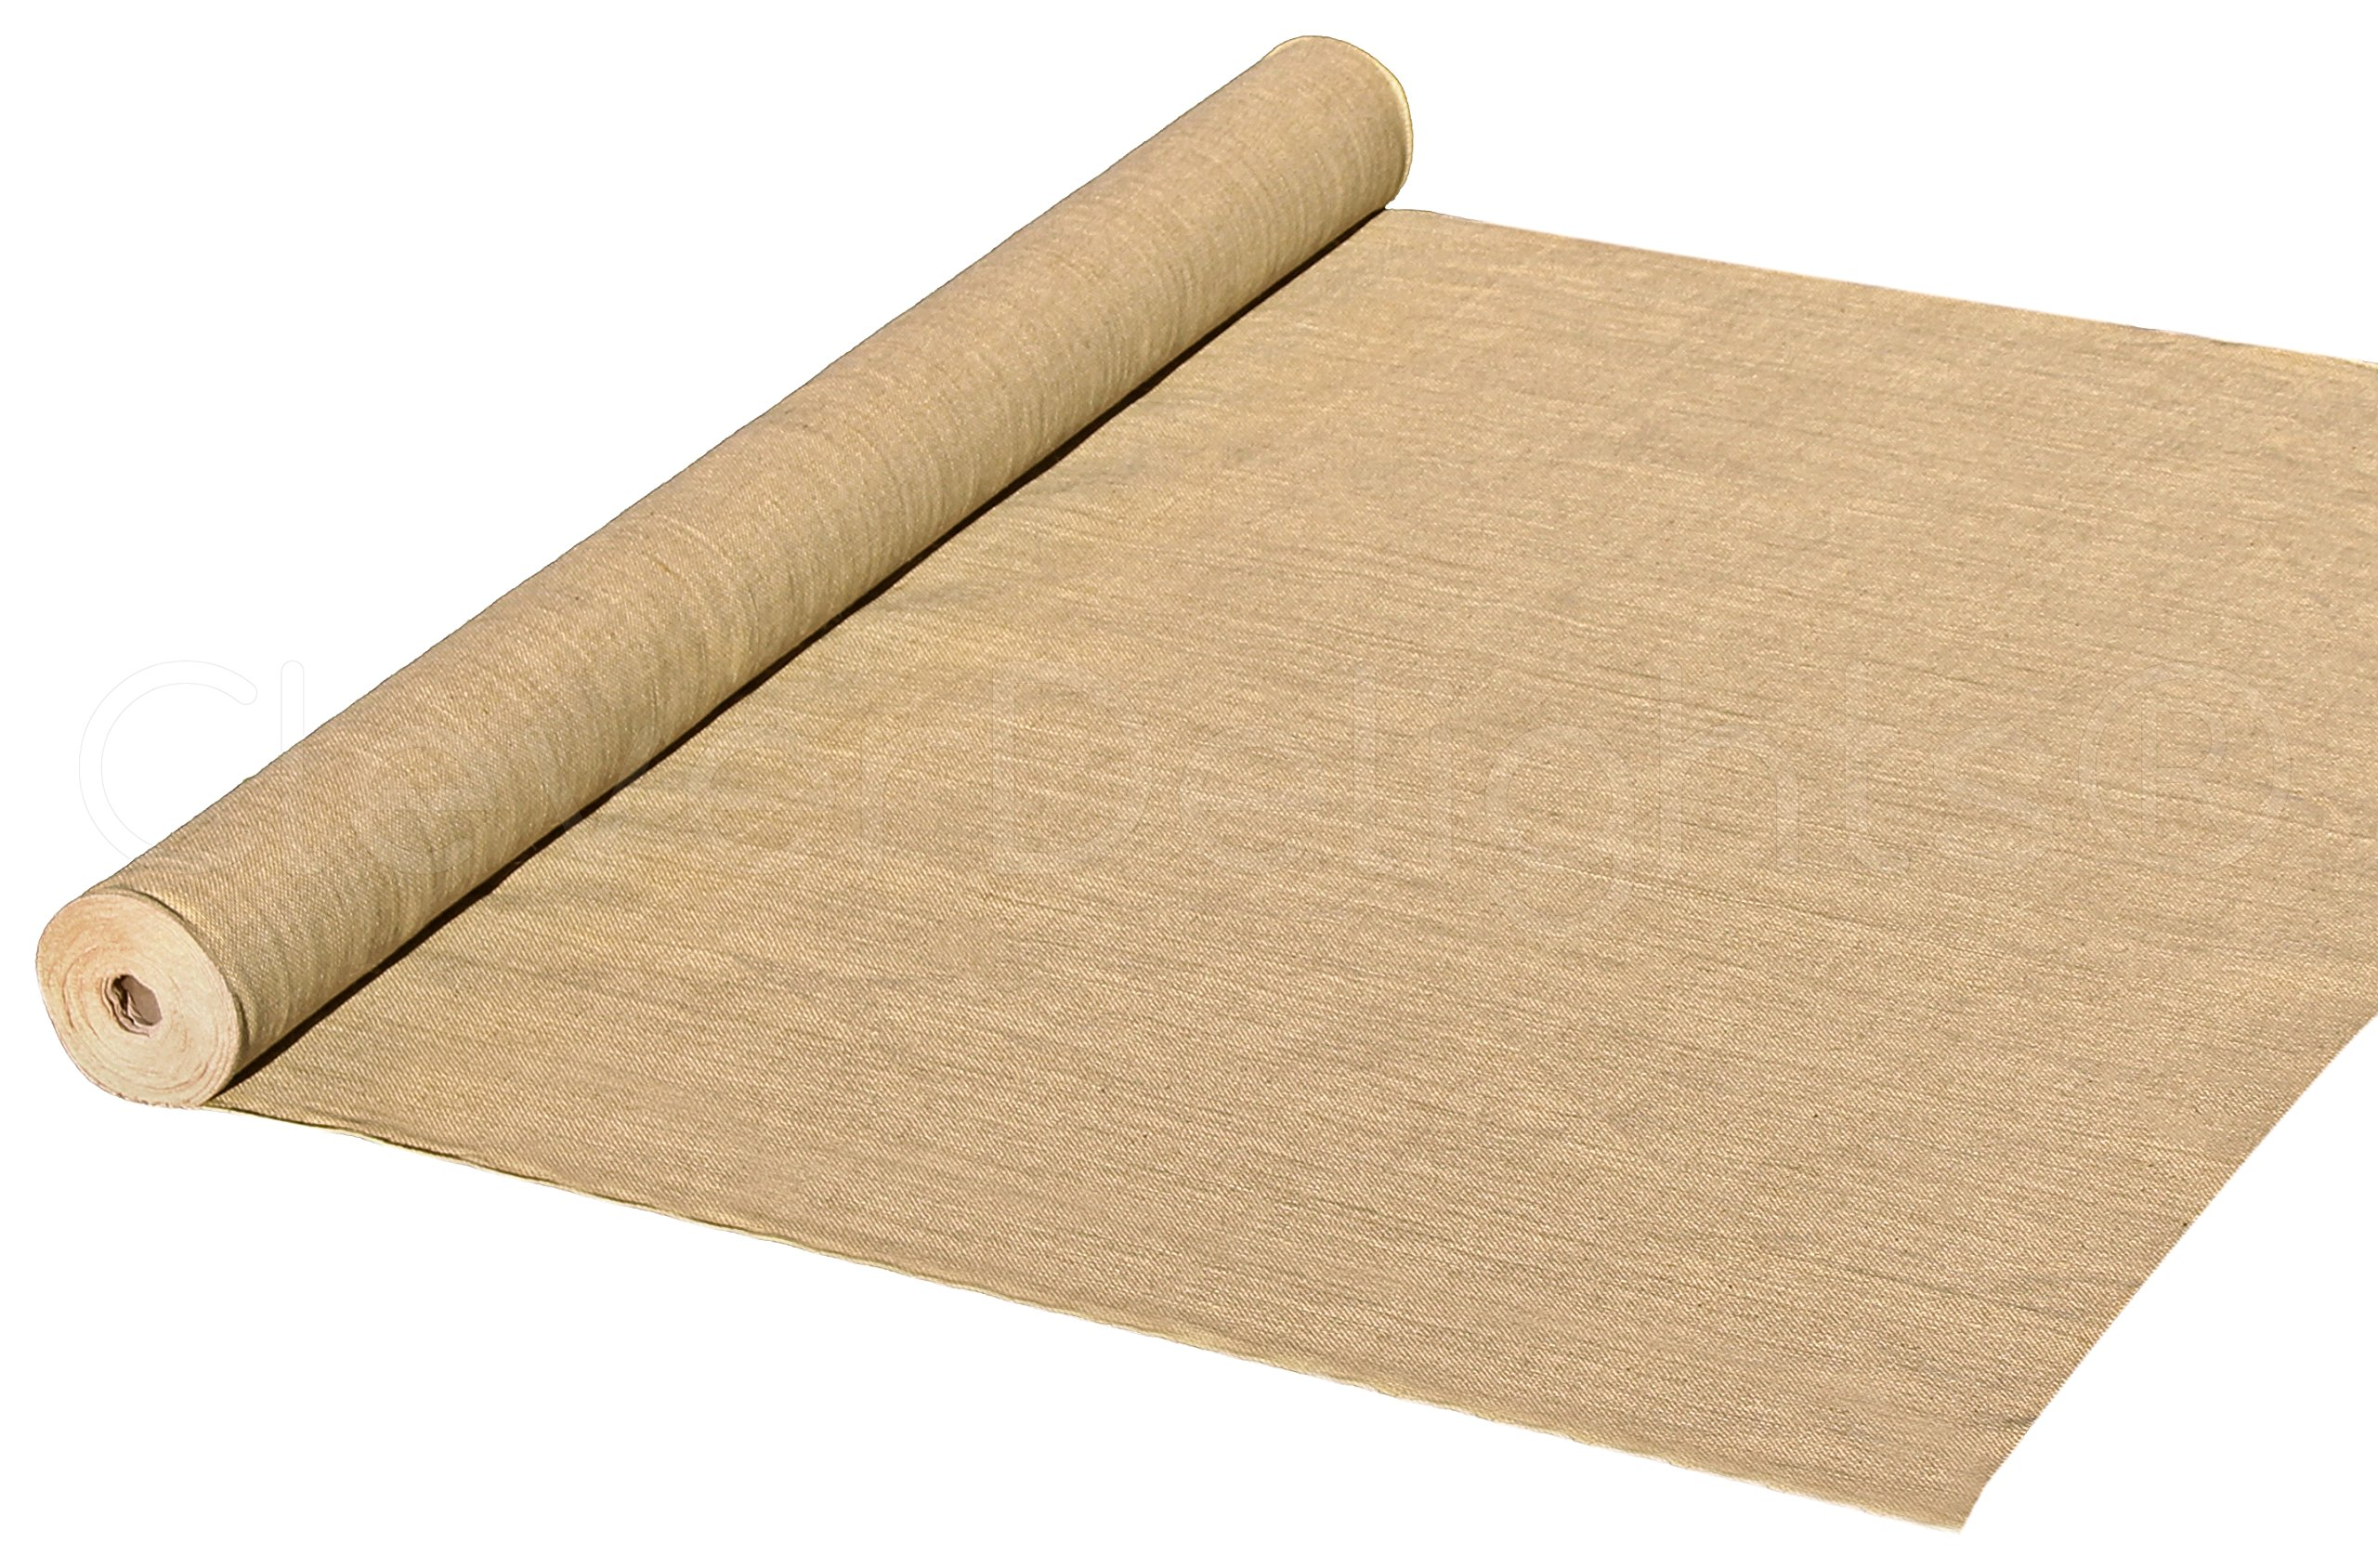 CleverDelights 60'' Premium Burlap Roll - 20 Yards - No-Fray Finished Edges - Natural Tight Weave Fabric